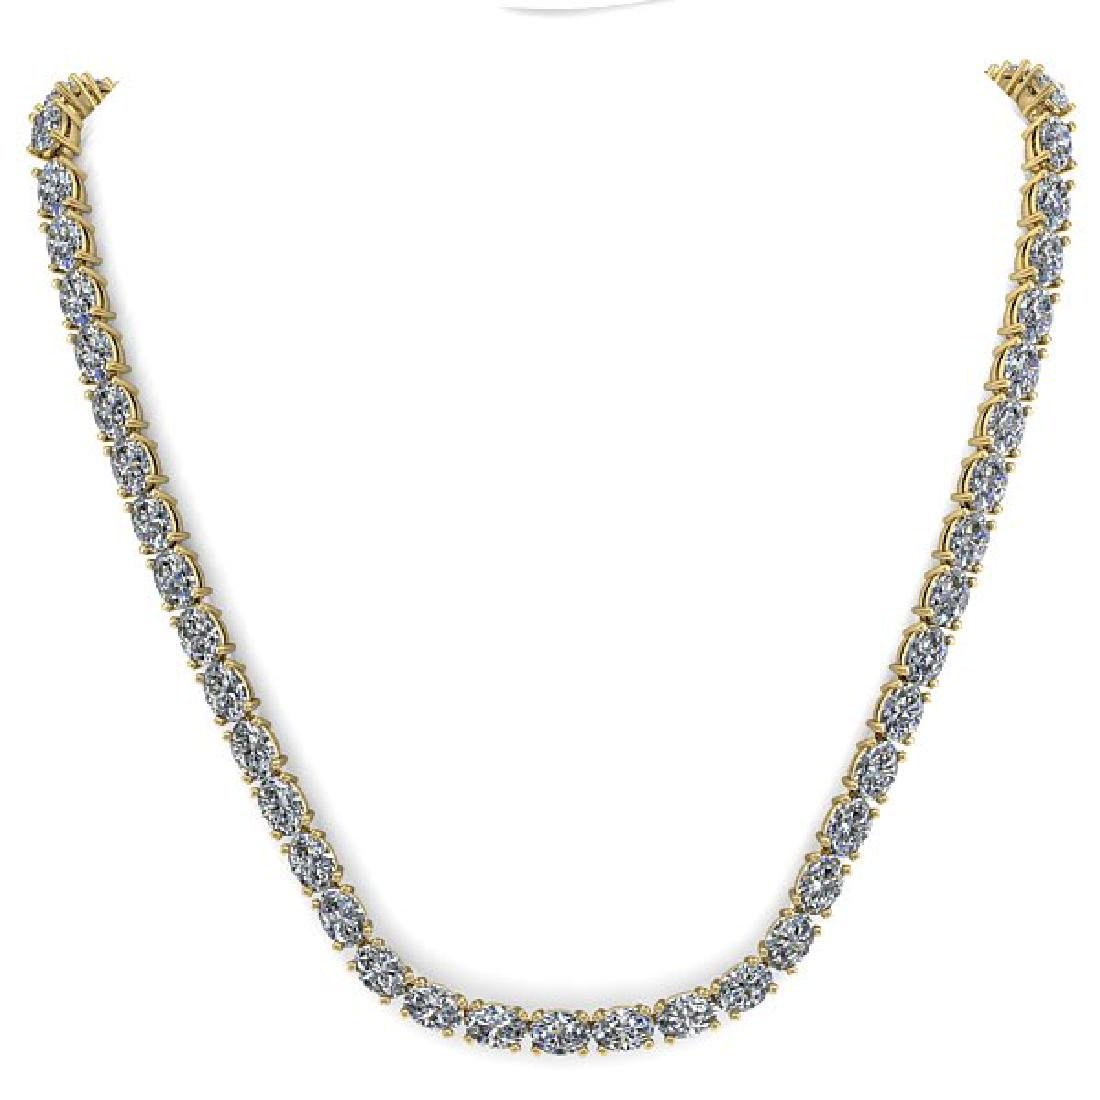 26 CTW Oval Cut Certified SI Diamond Necklace 18K - 3